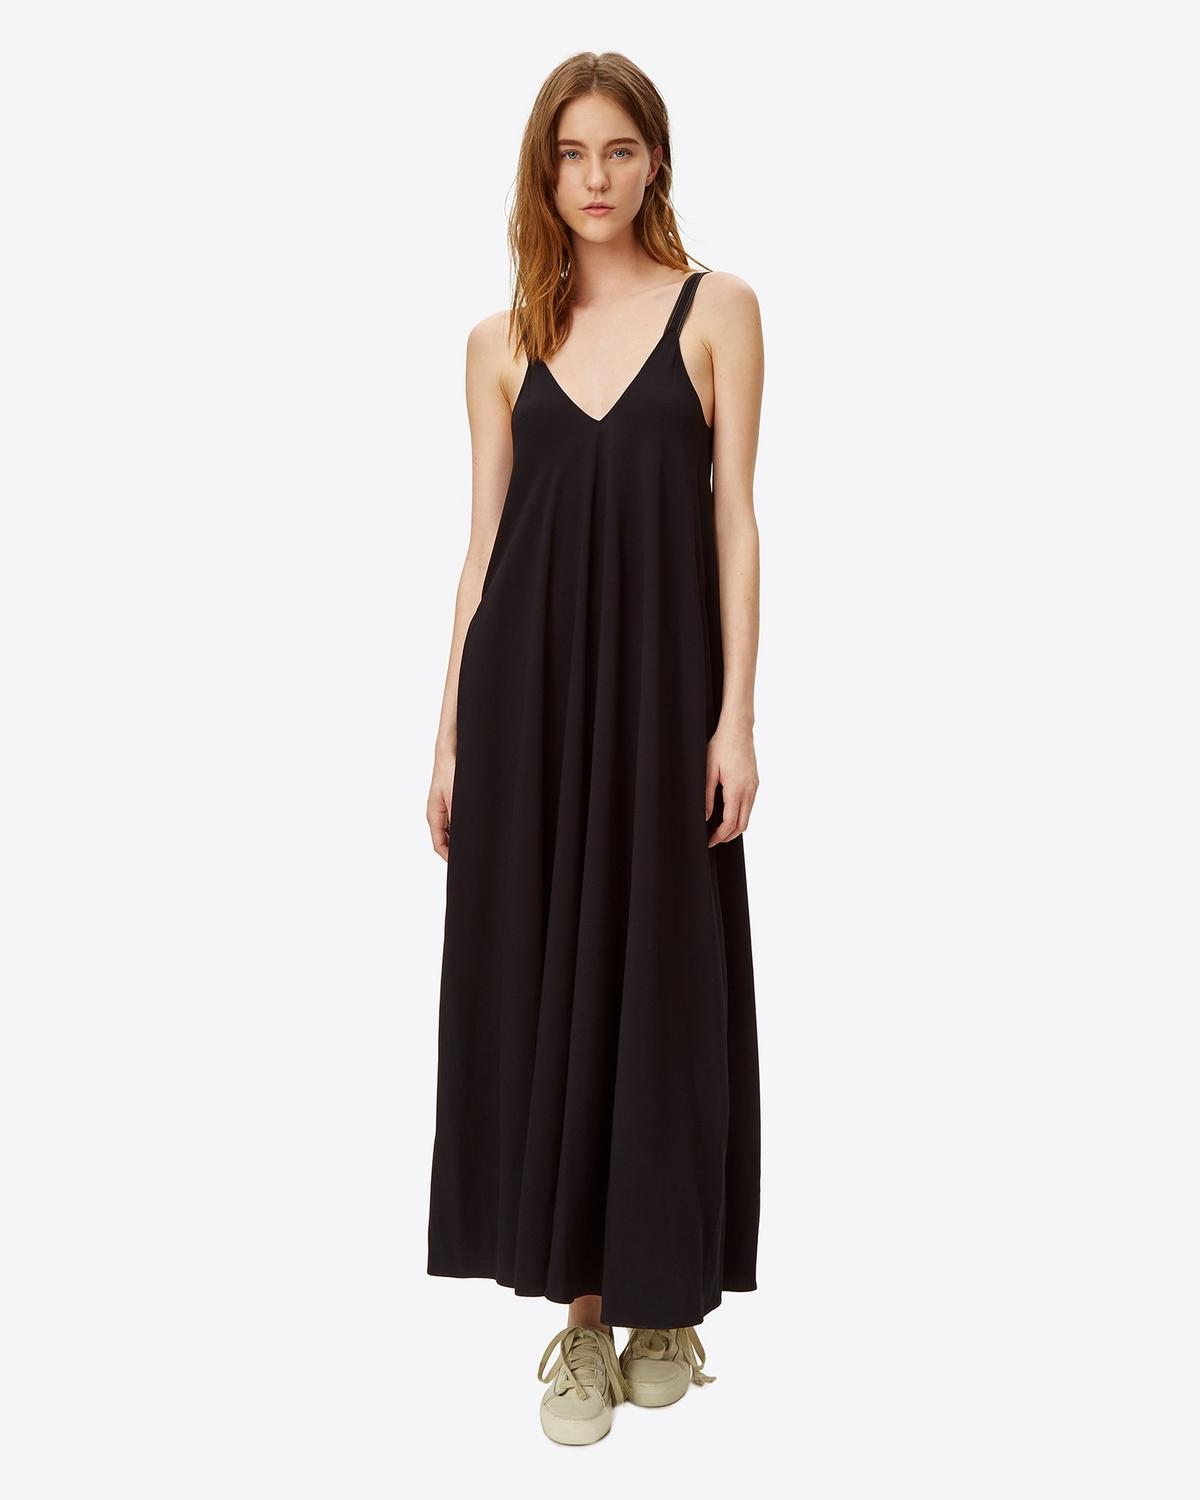 Maxikleid sommer extra lang